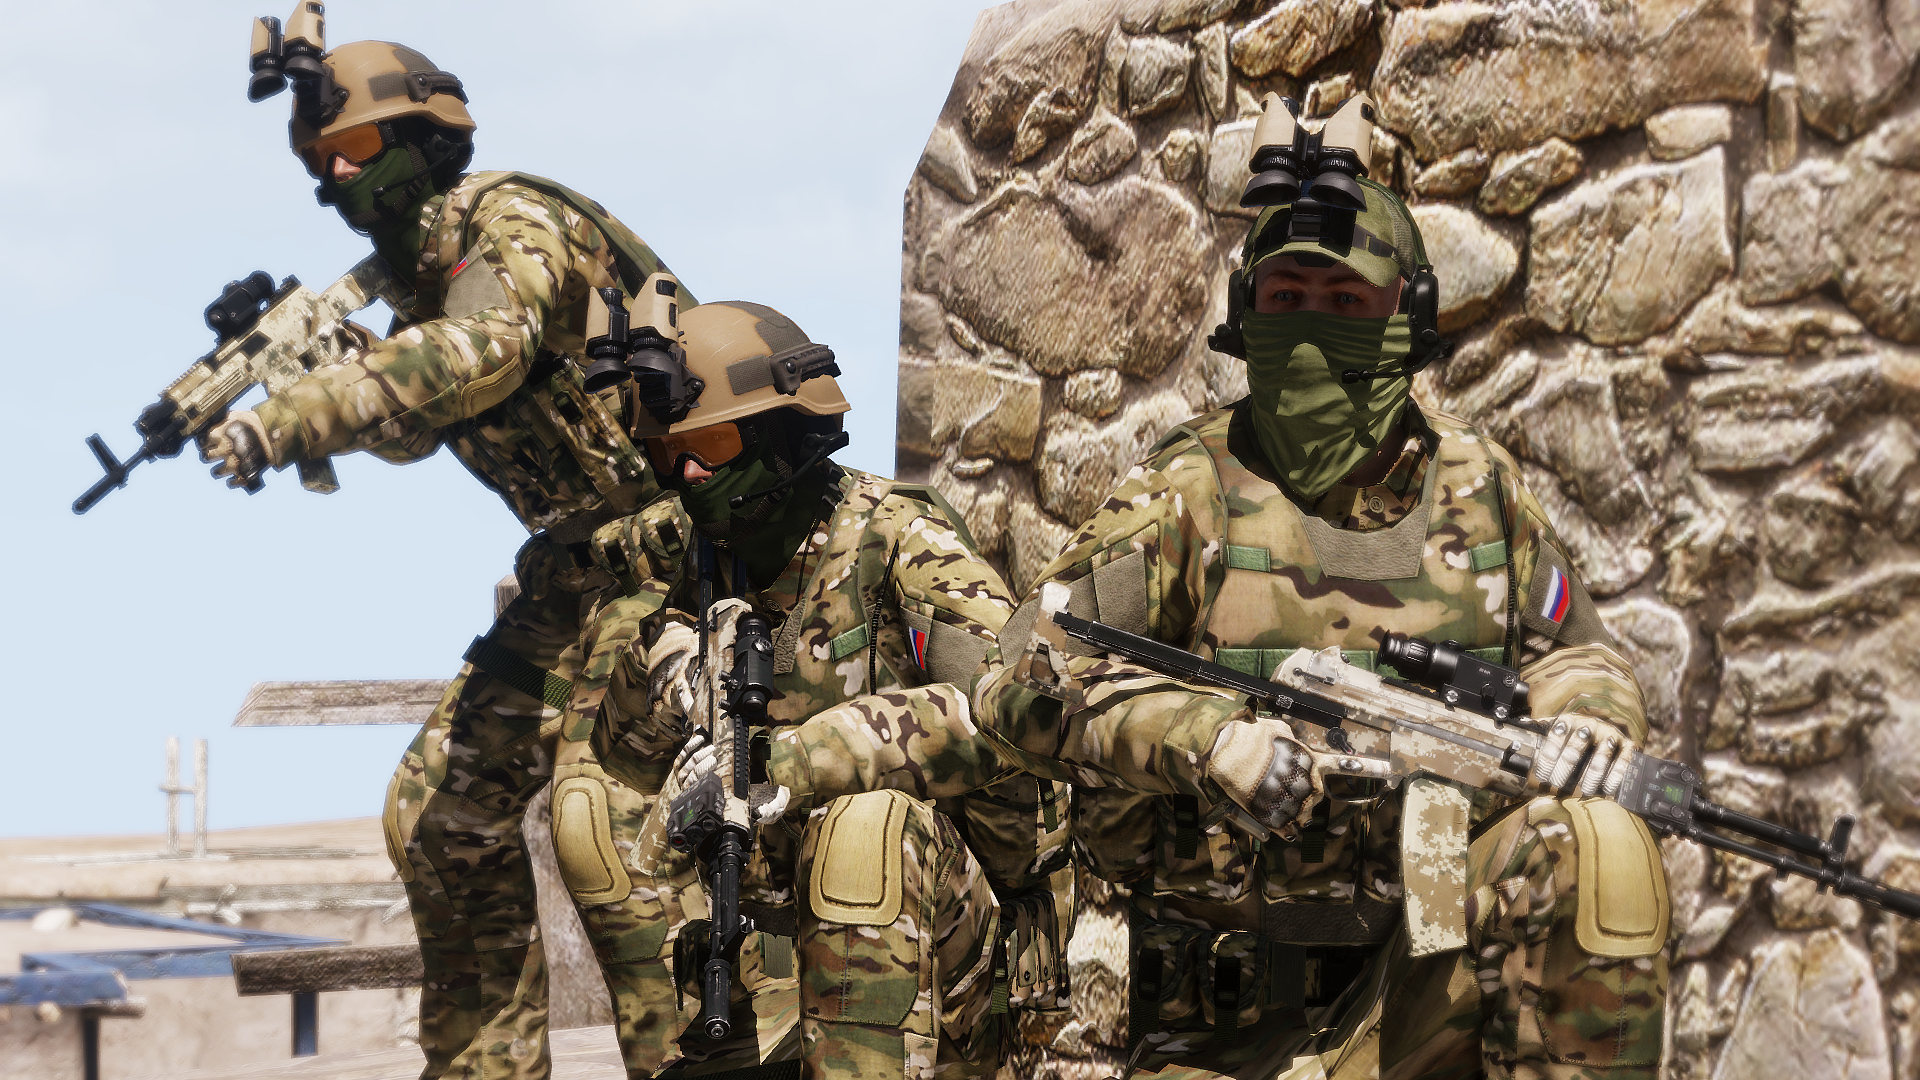 2035 Russian Armed Forces Mod For Arma